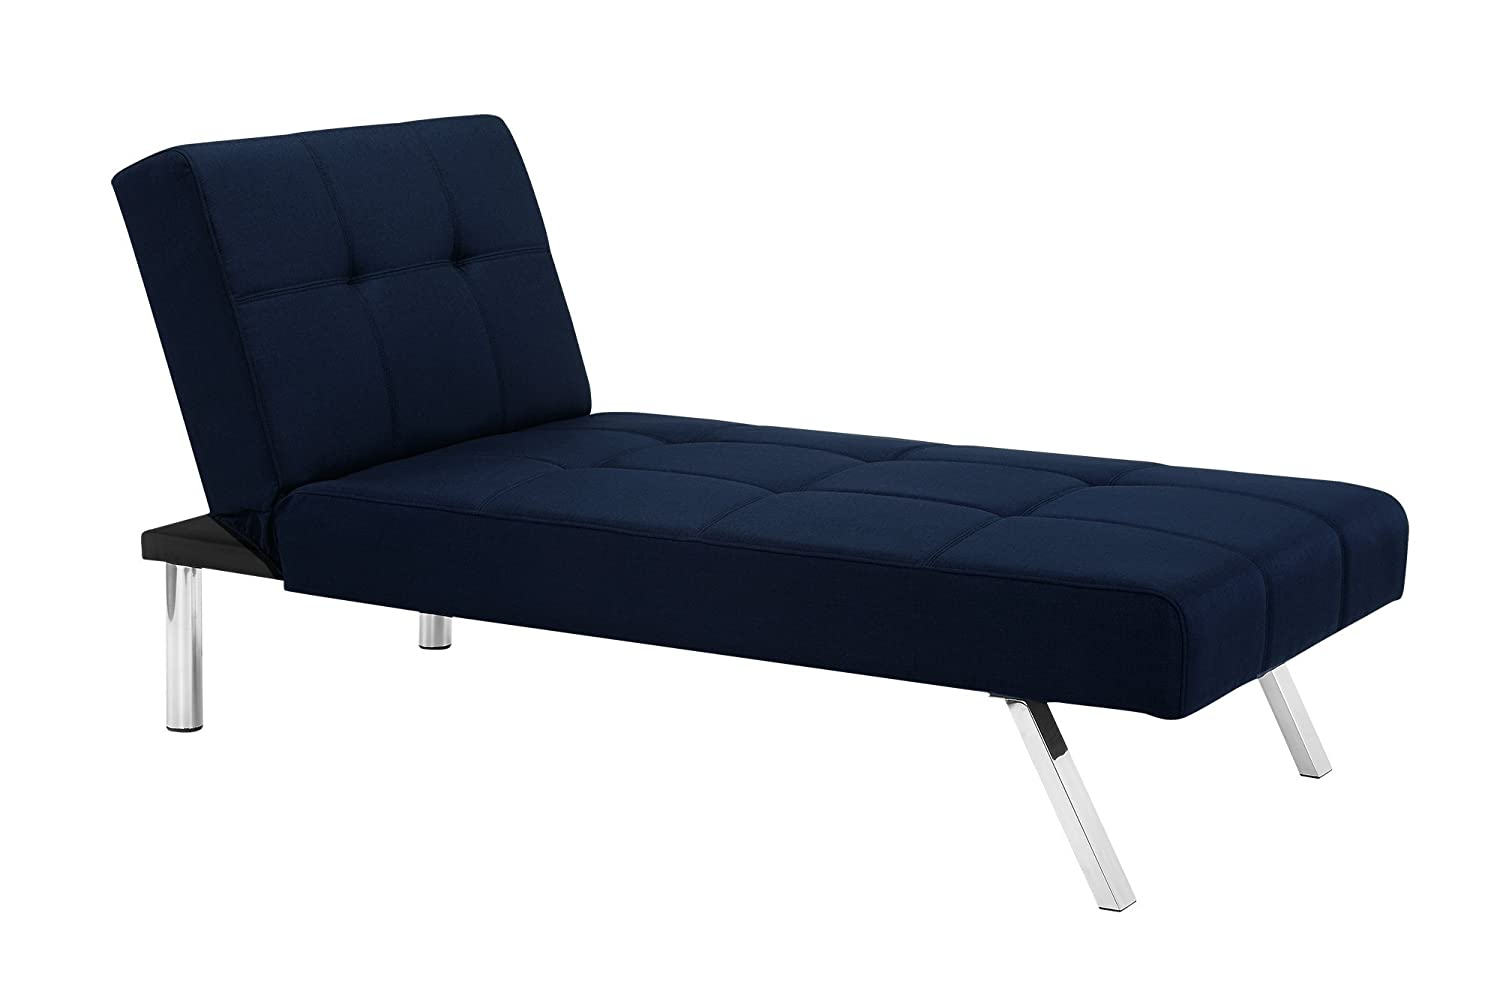 Durdham fabric chaise longue sofa bed for Argos chaise sofa bed